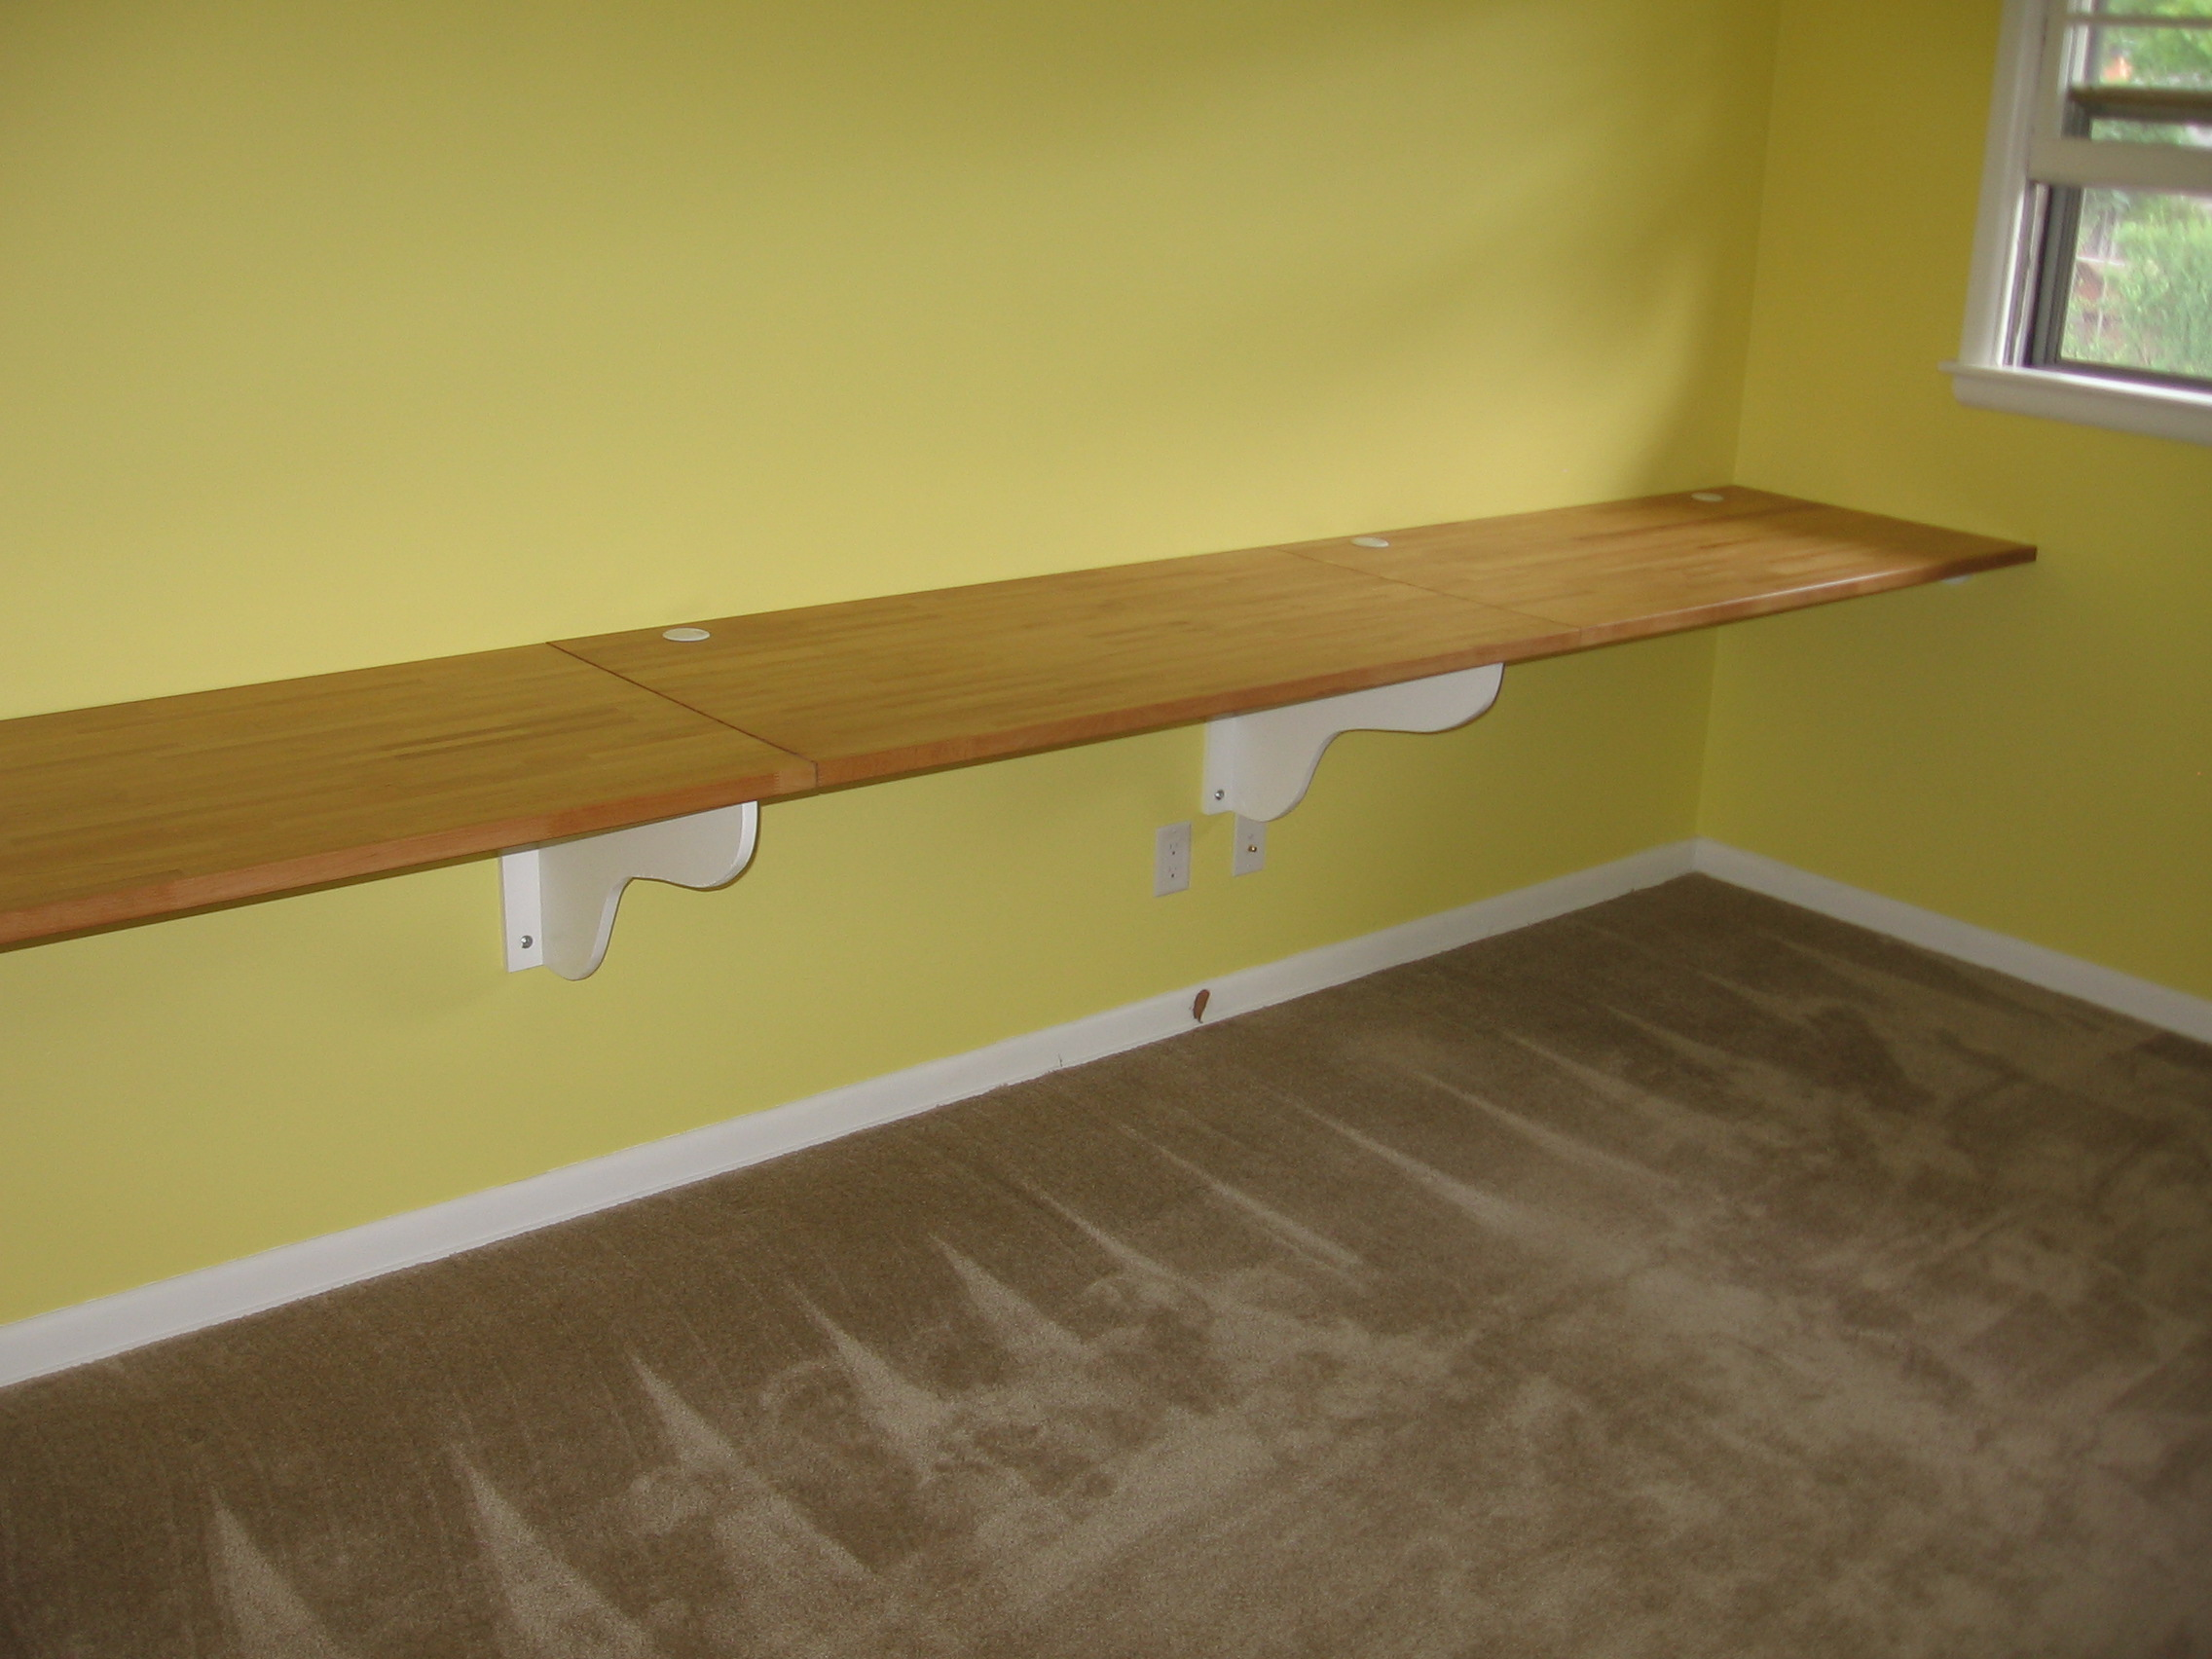 How To Build A Laminate Countertop Built In Desk Is Better Than Anything We Could Buy Jumptuck